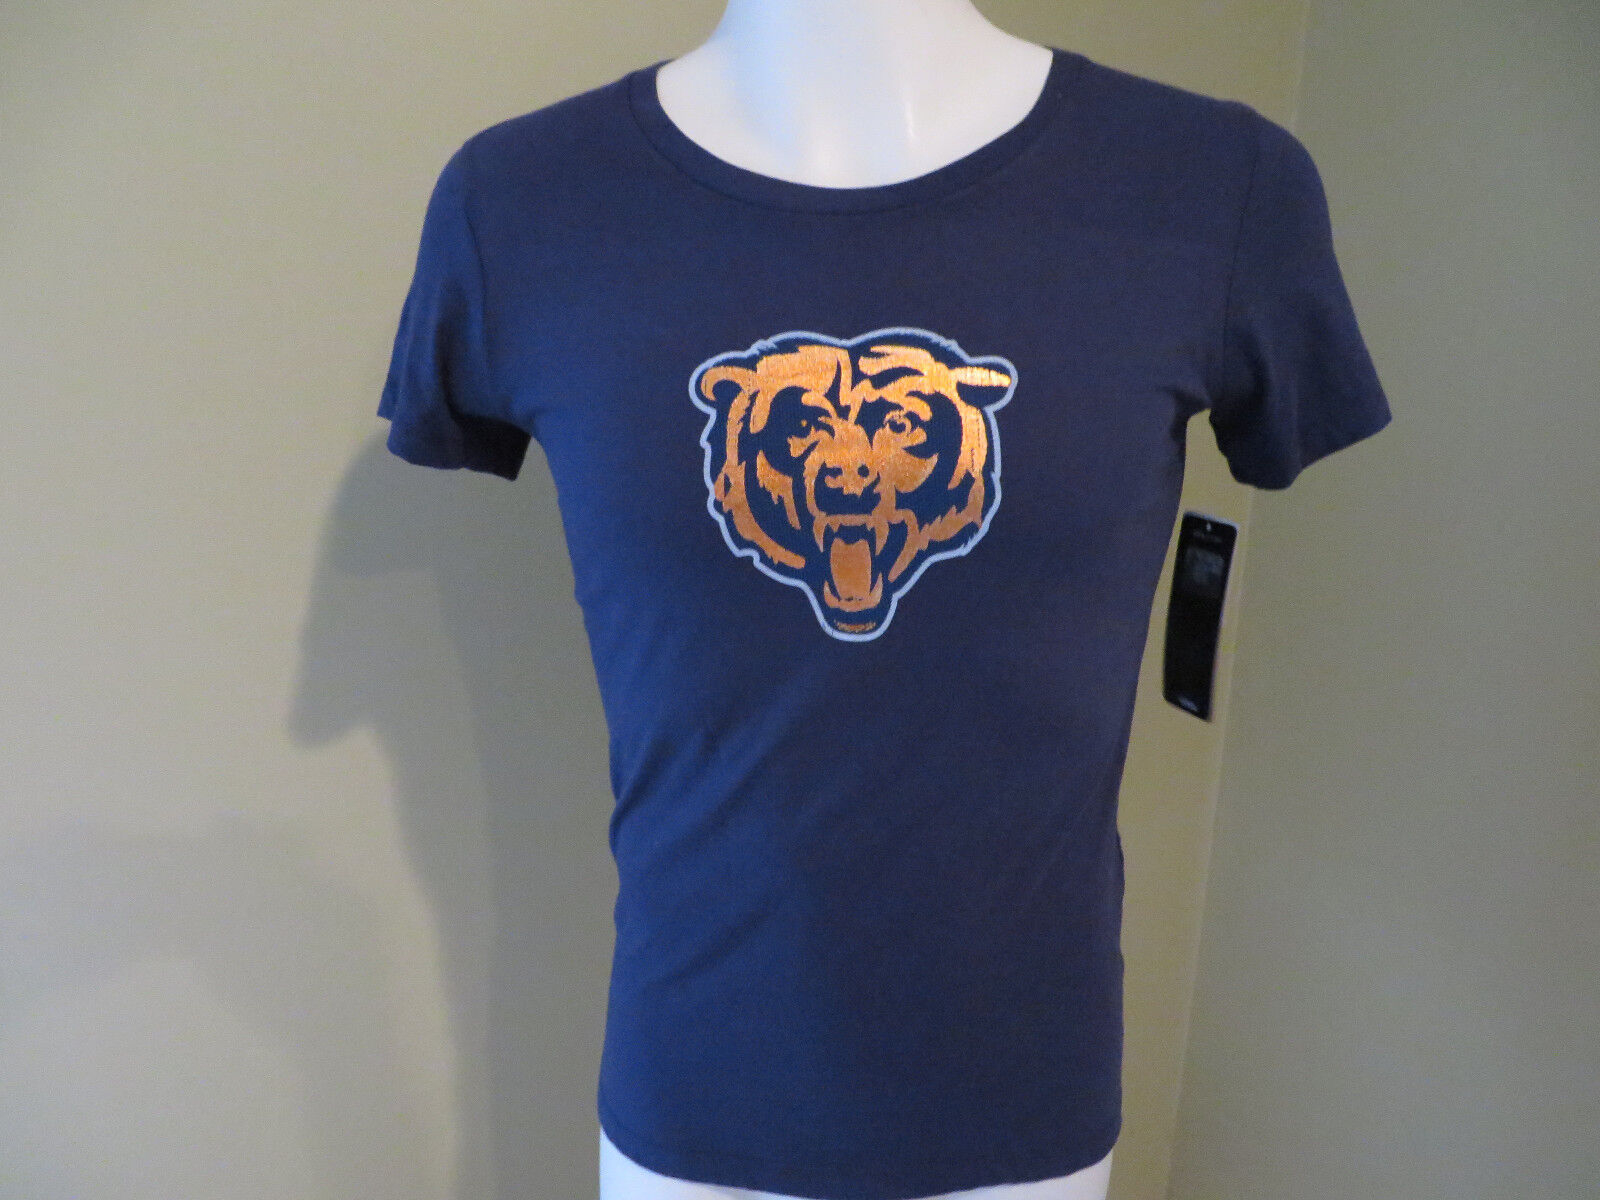 010f859a Majestic Chicago Bears Graphic T-Shirt Womes's Small S Blue 100% Cotton New  NWT